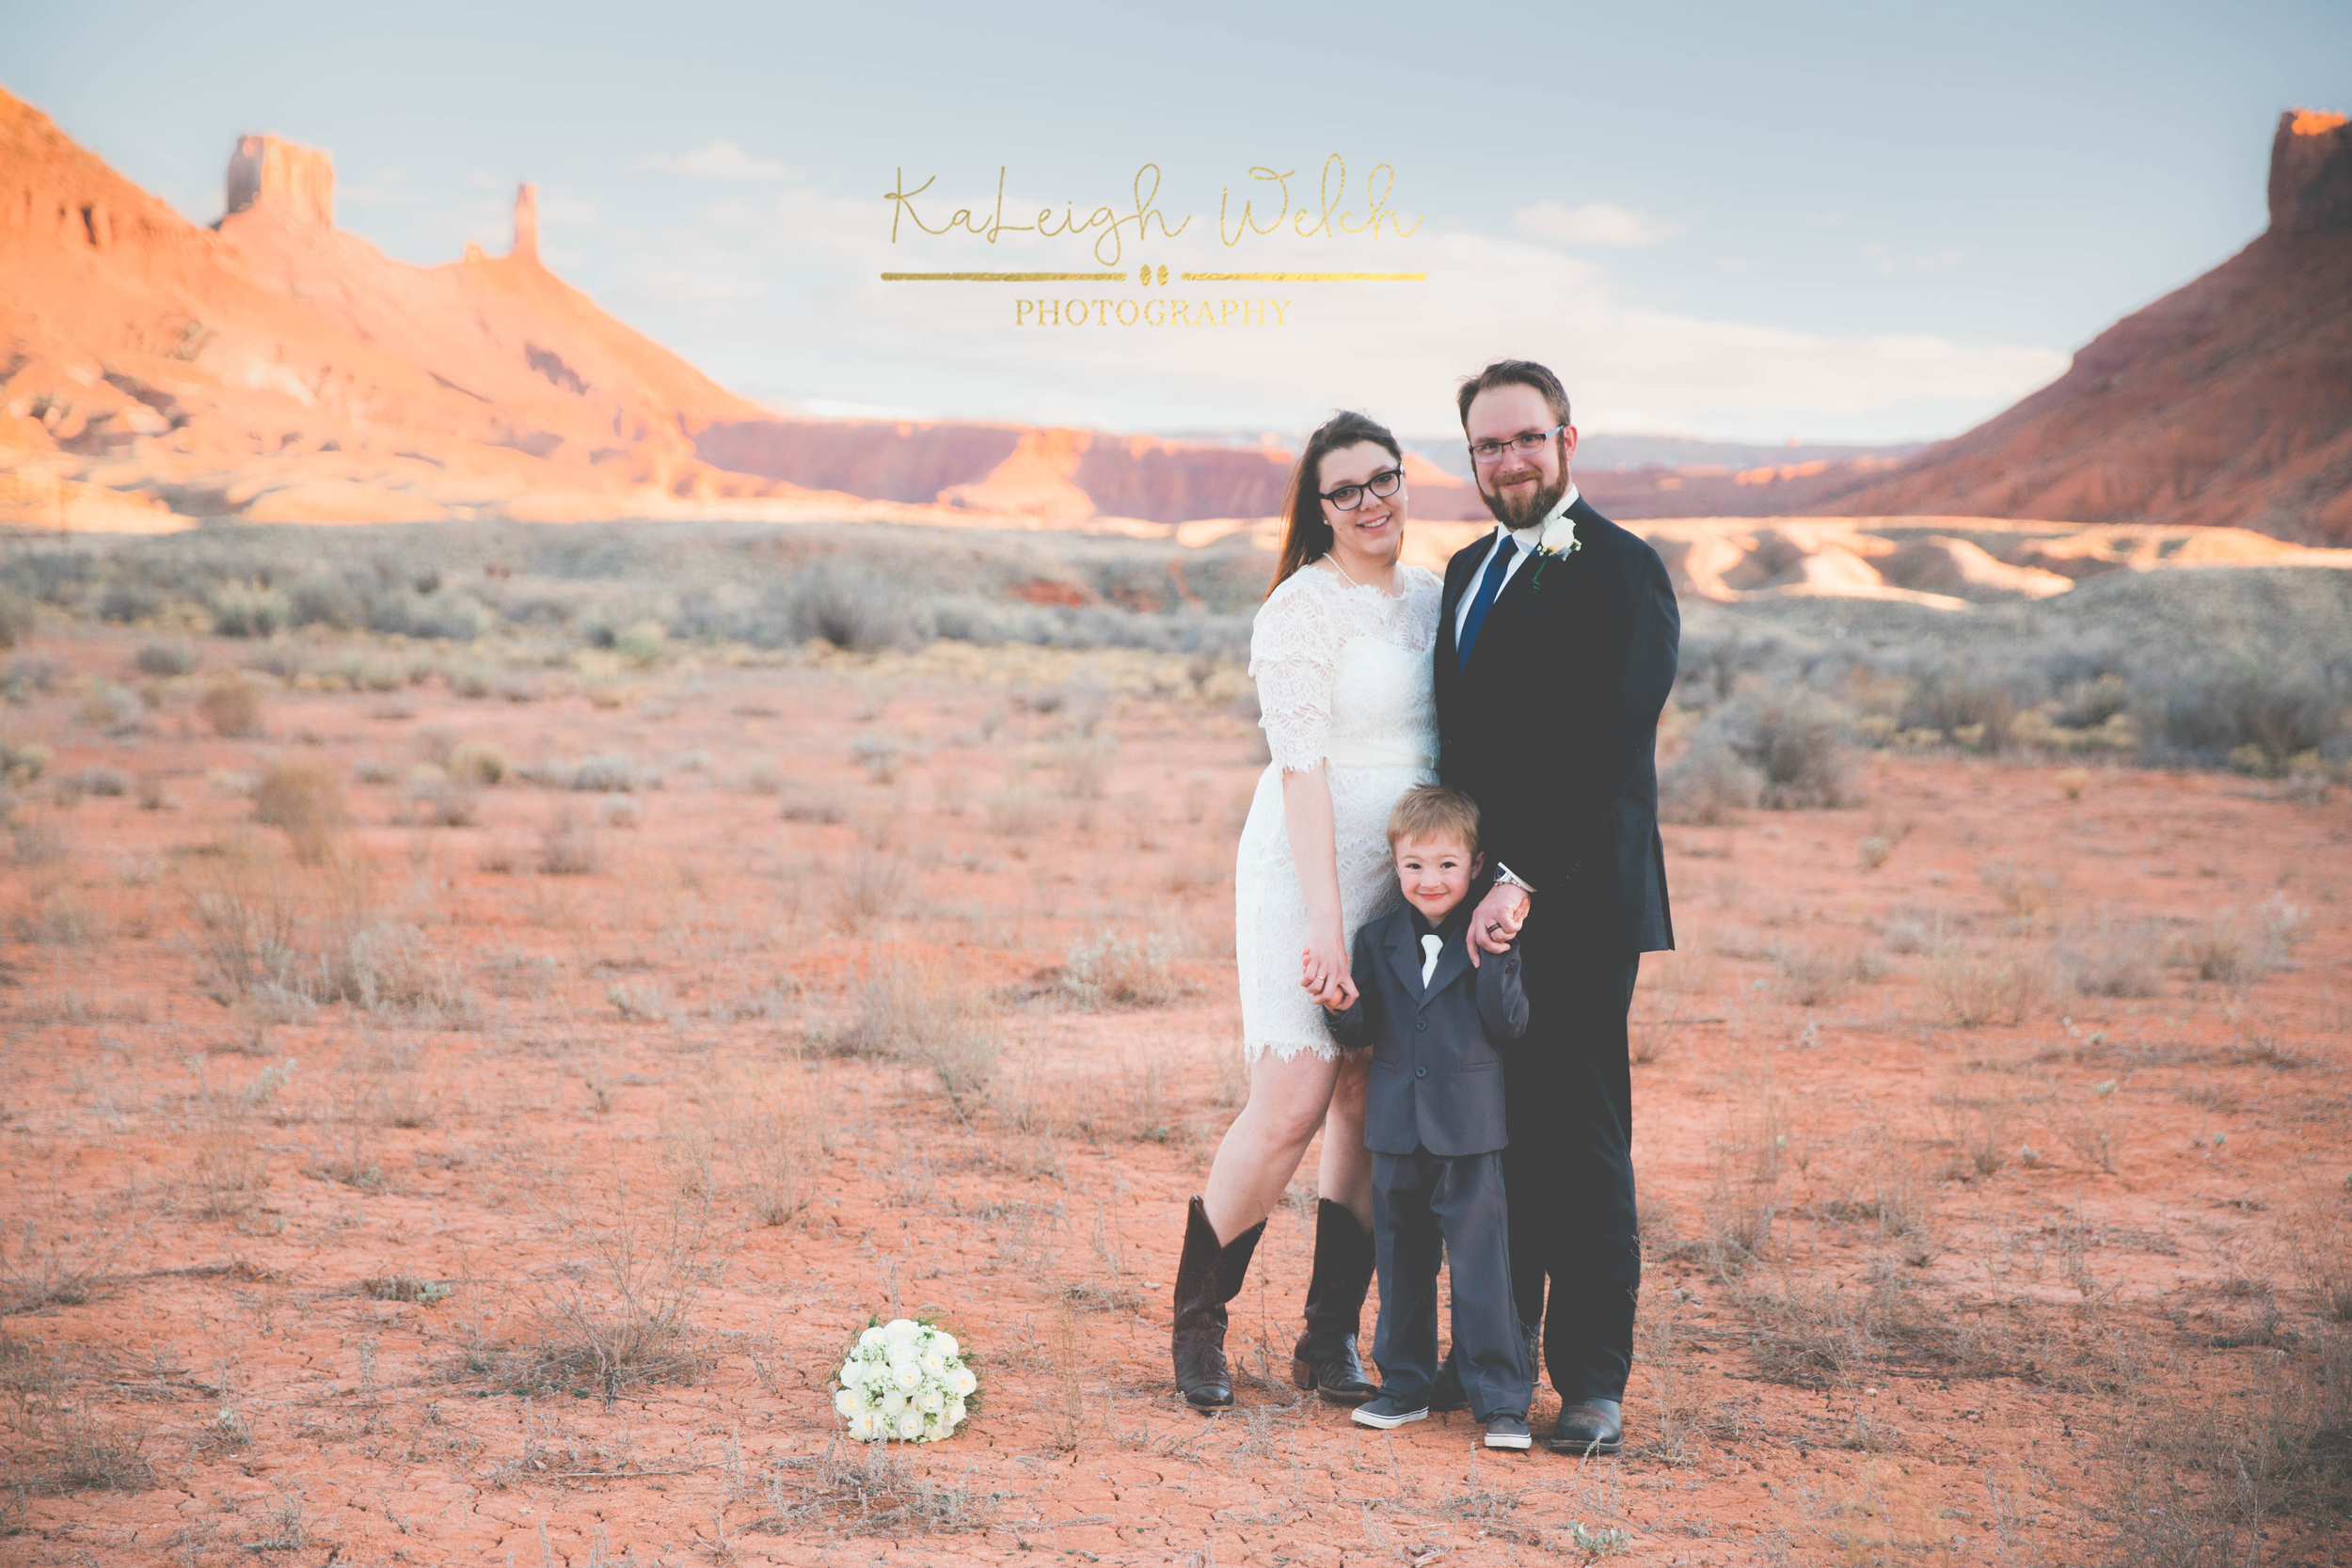 KaLeigh Welch Photography, Moab, UT Wedding Photographer